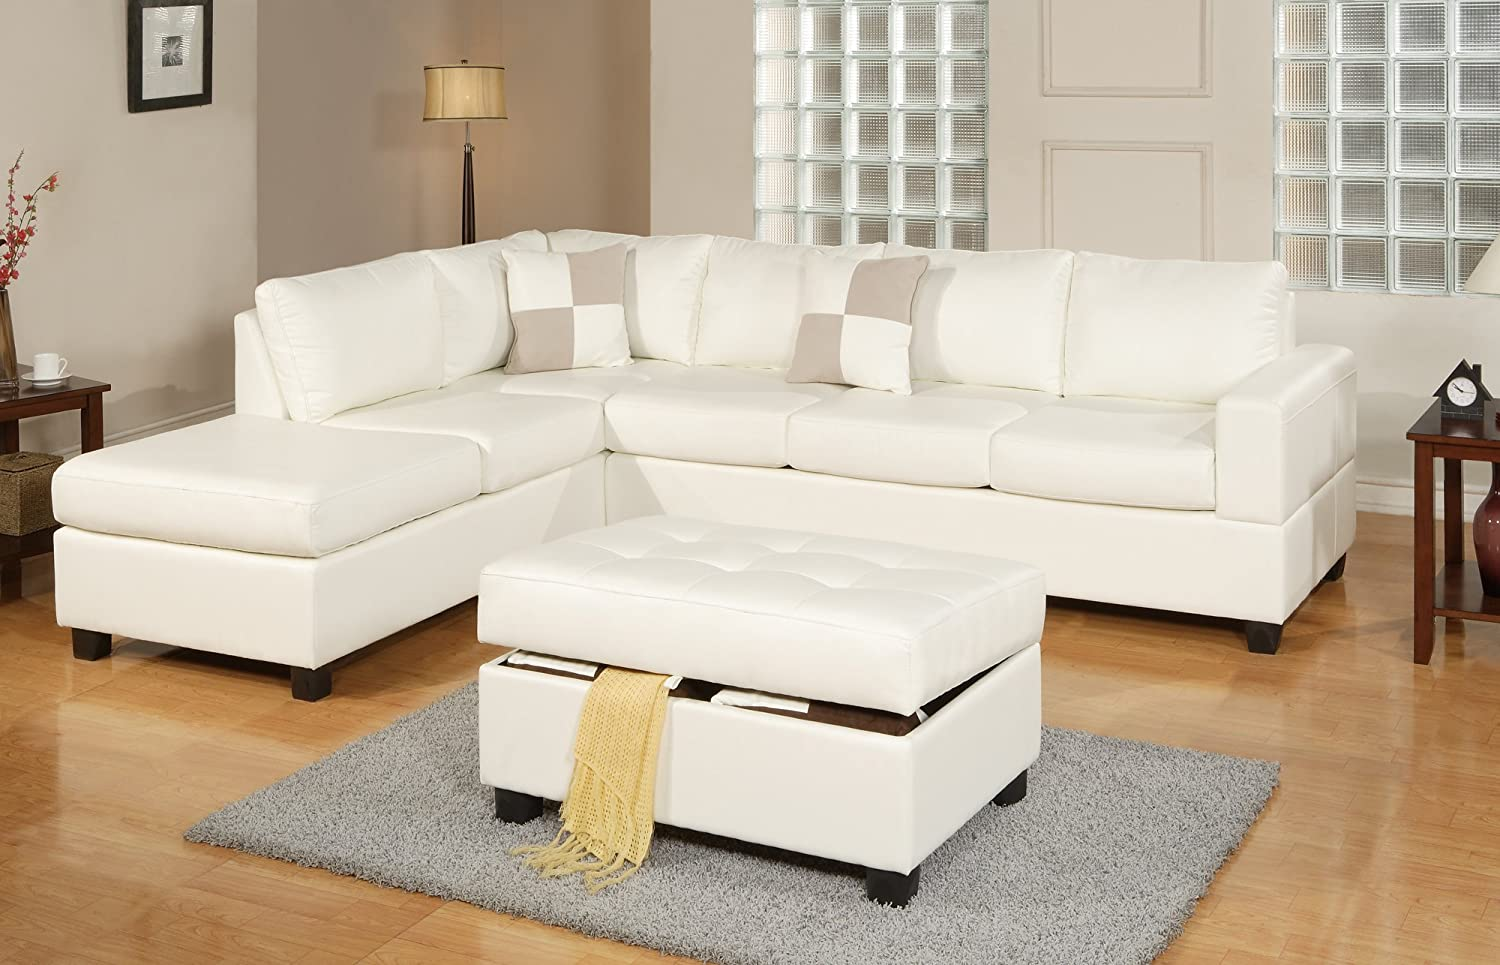 sofa sectionals arabella sectional white arco contempoary arabela modern